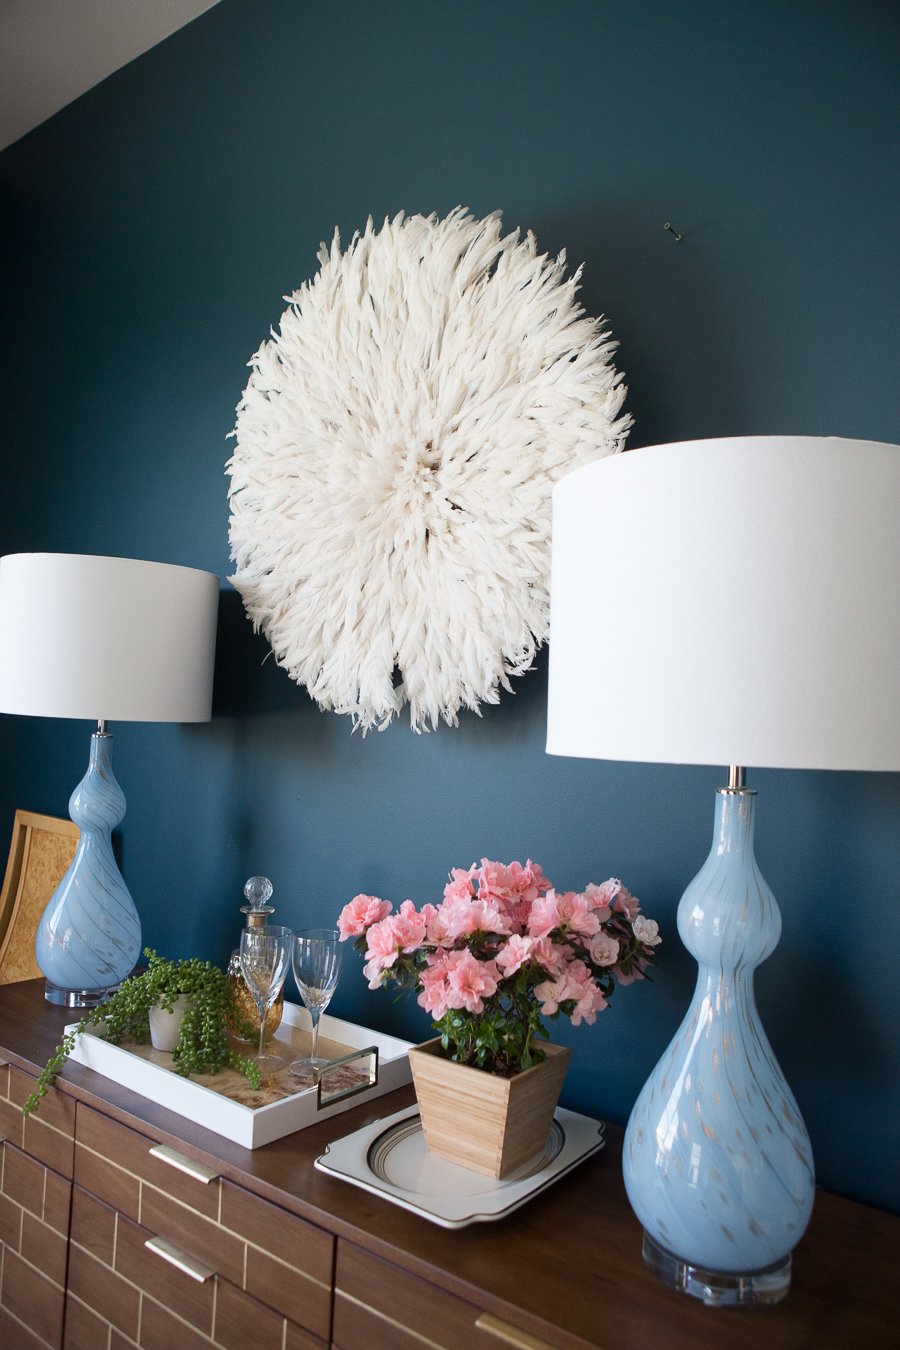 How to Use a Juju Hat in Home Decor dark green painted walls blue cascade lamps dining room credenza styling